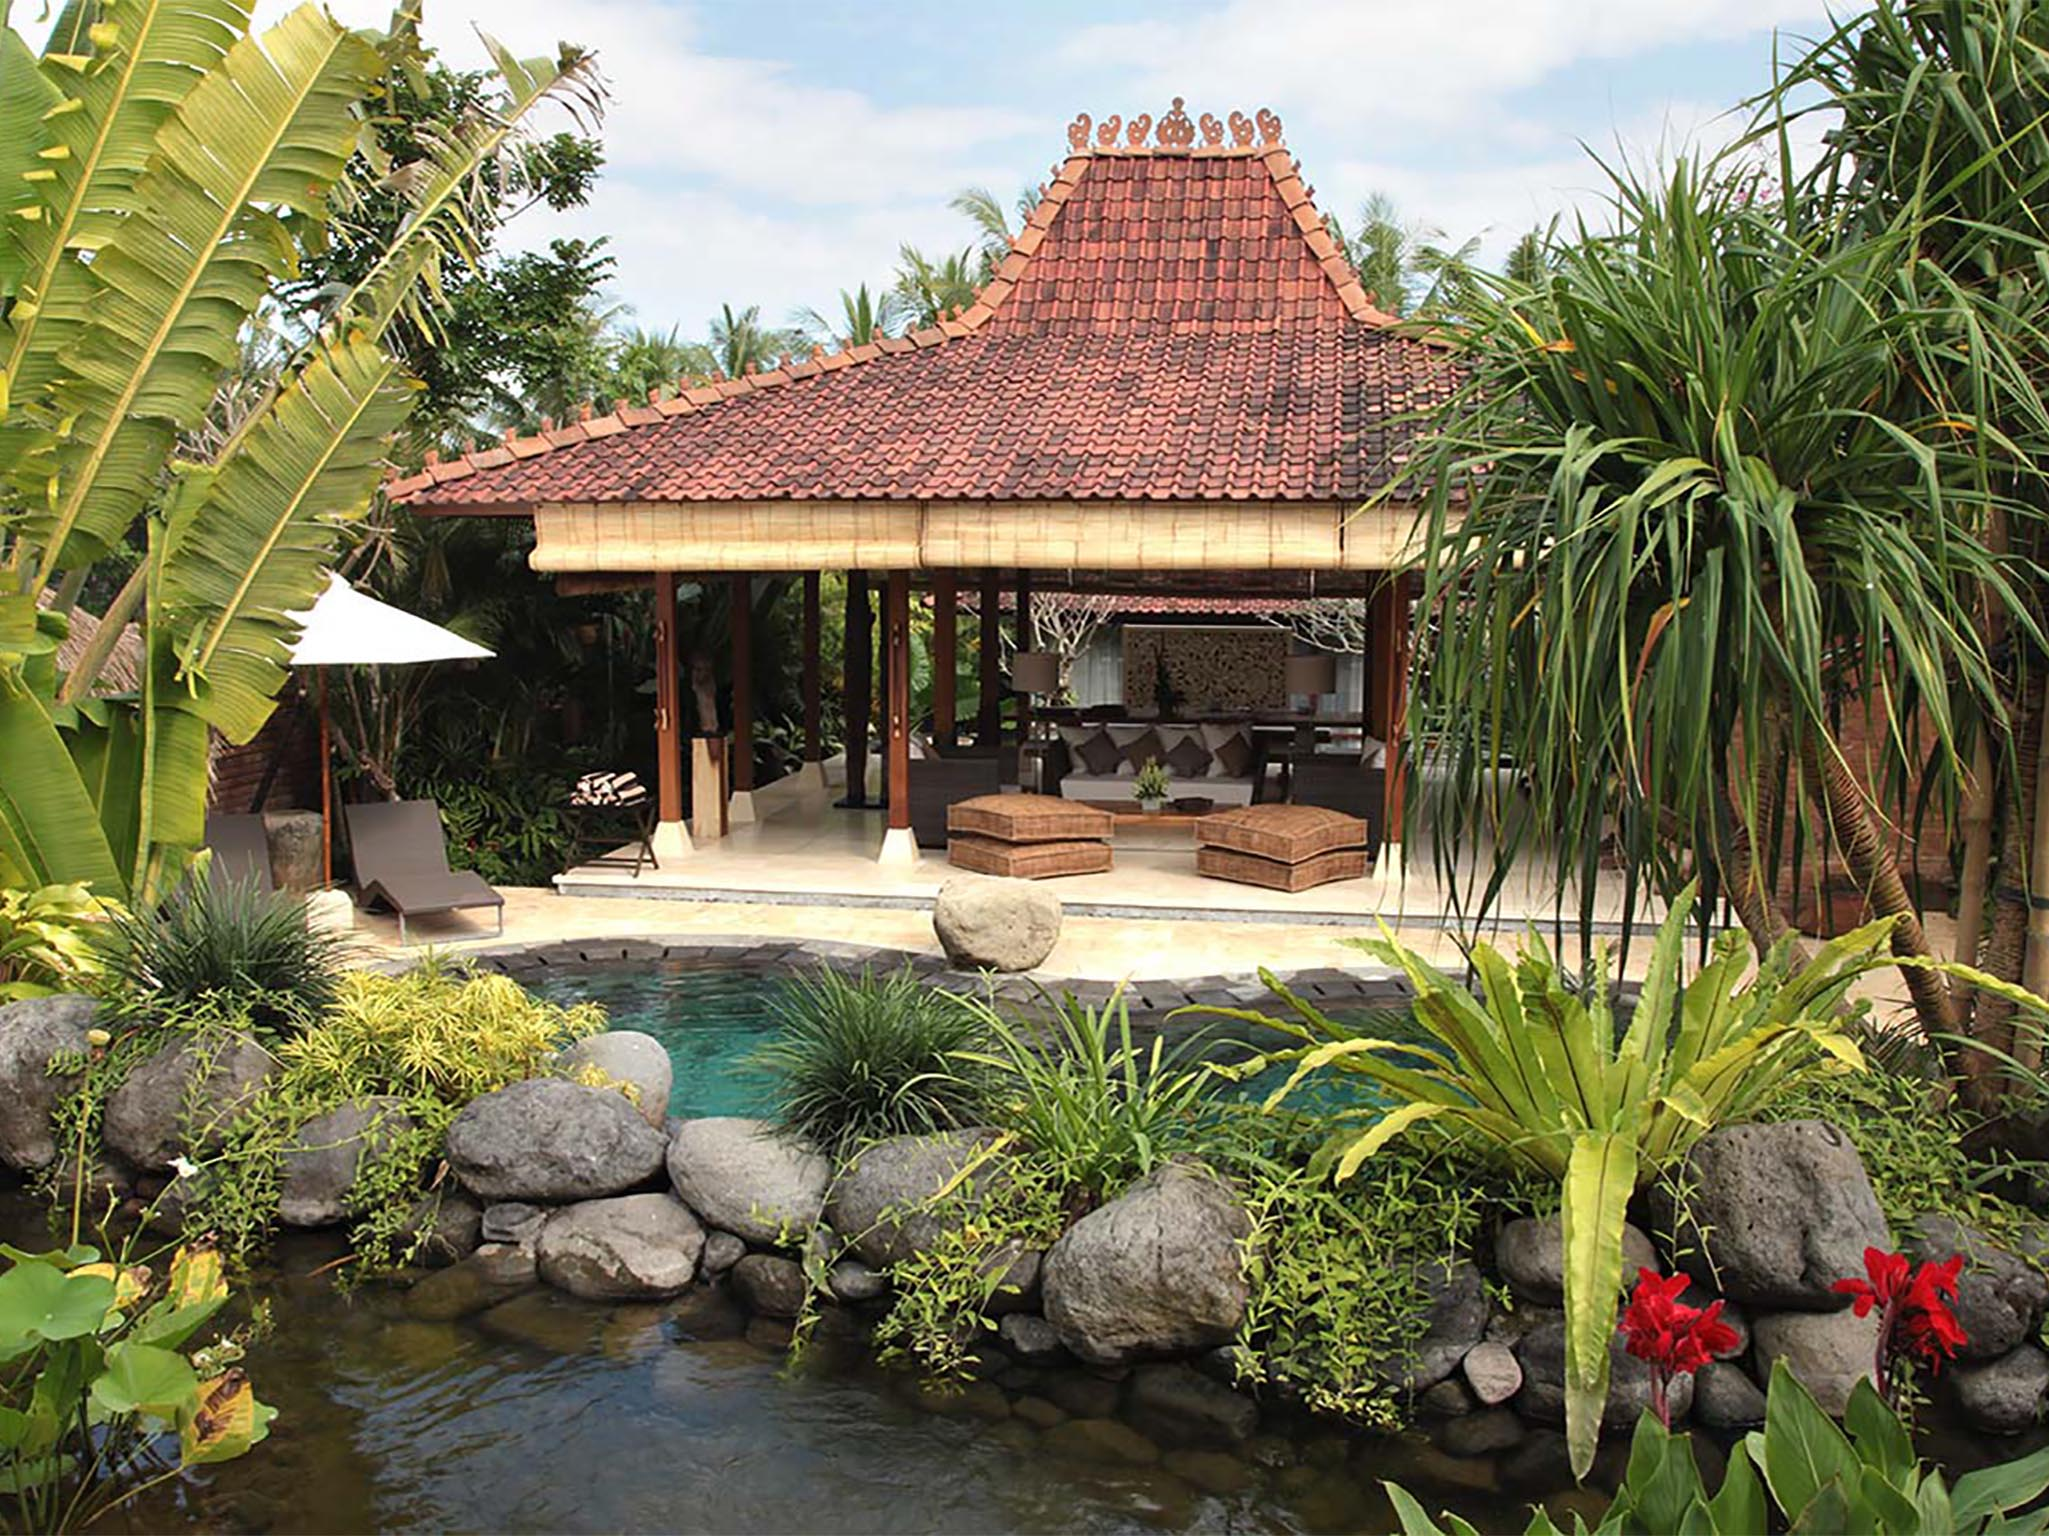 Villa Amy - Living and dining view from pool - Dea Villas - Villa Amy, Canggu, Bali